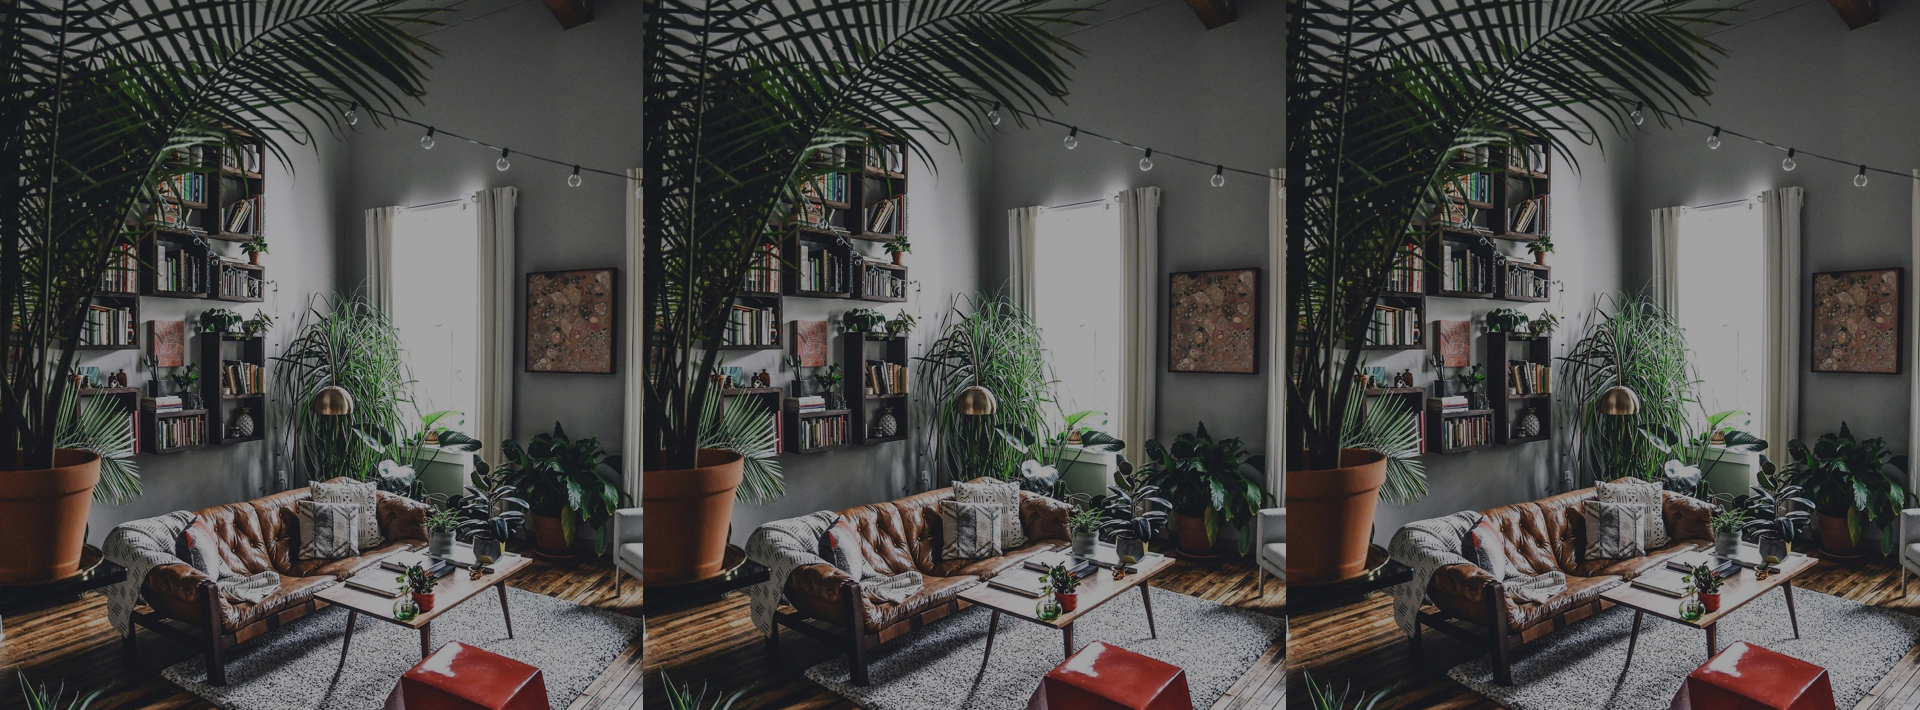 Indoor nature may be the answer to make us feel human again. 🍃